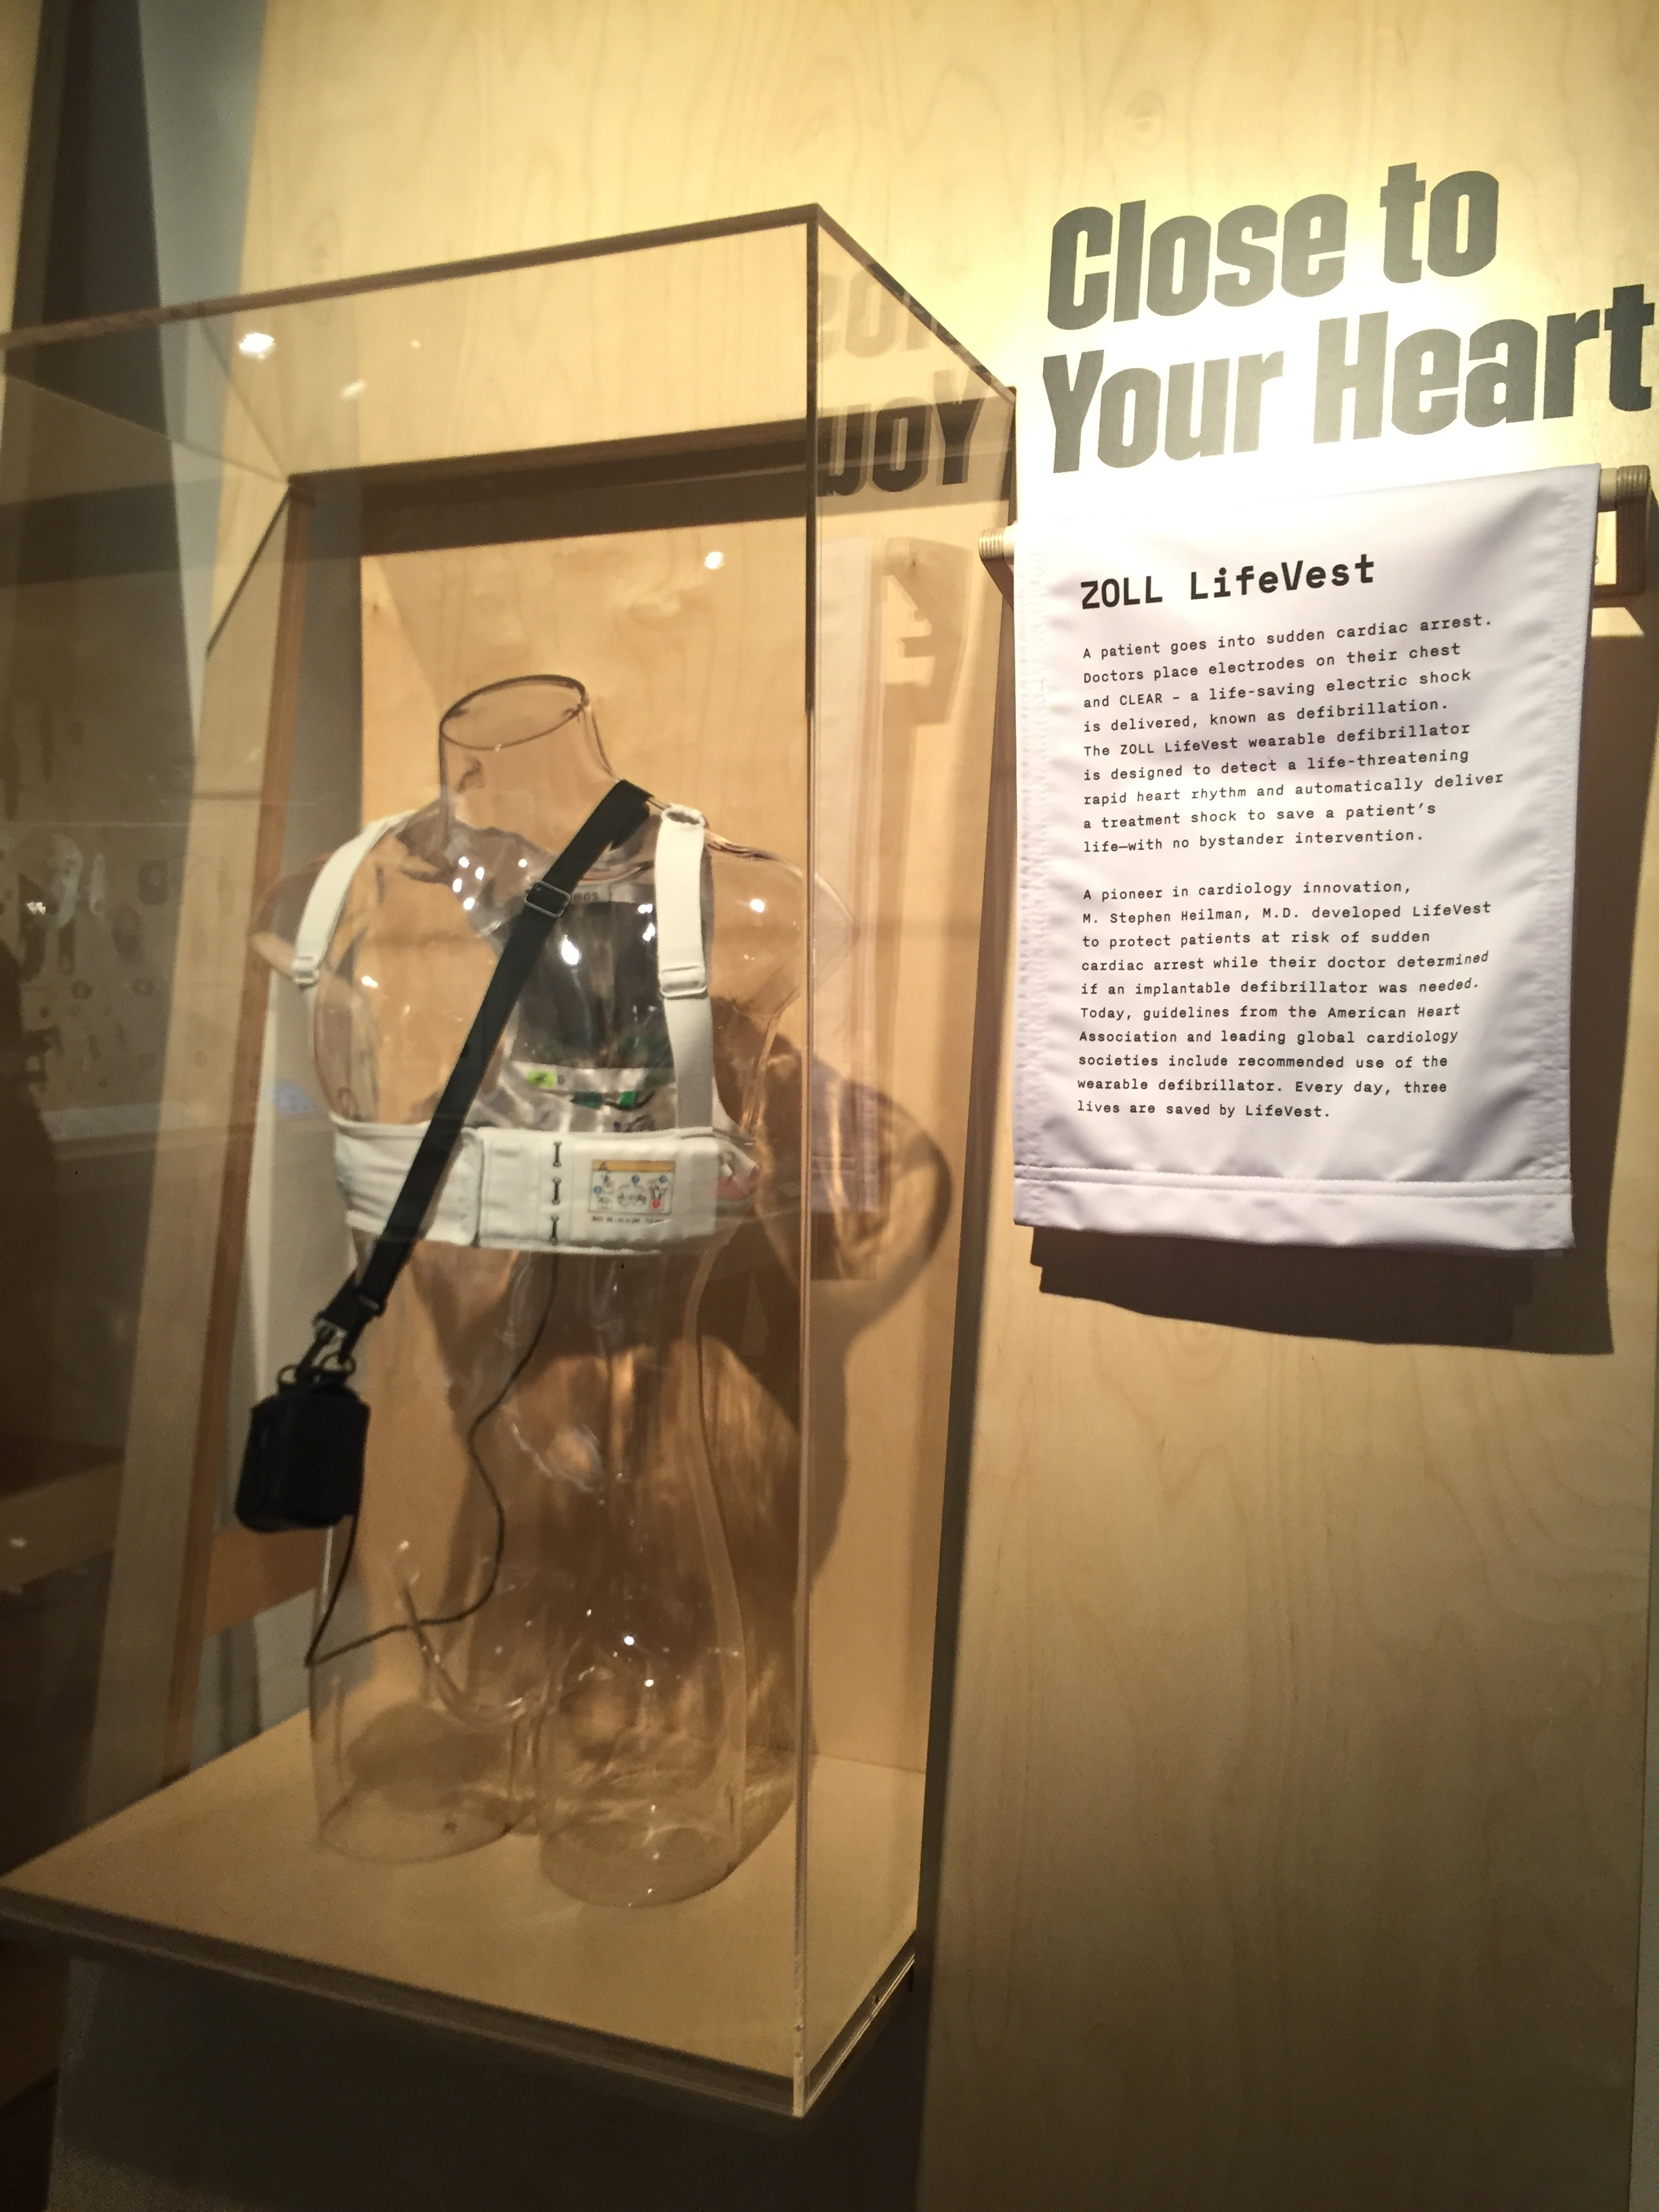 A wearable defibrillator that's currently saving lives, developed by Dr. M. Stephen Heilman.